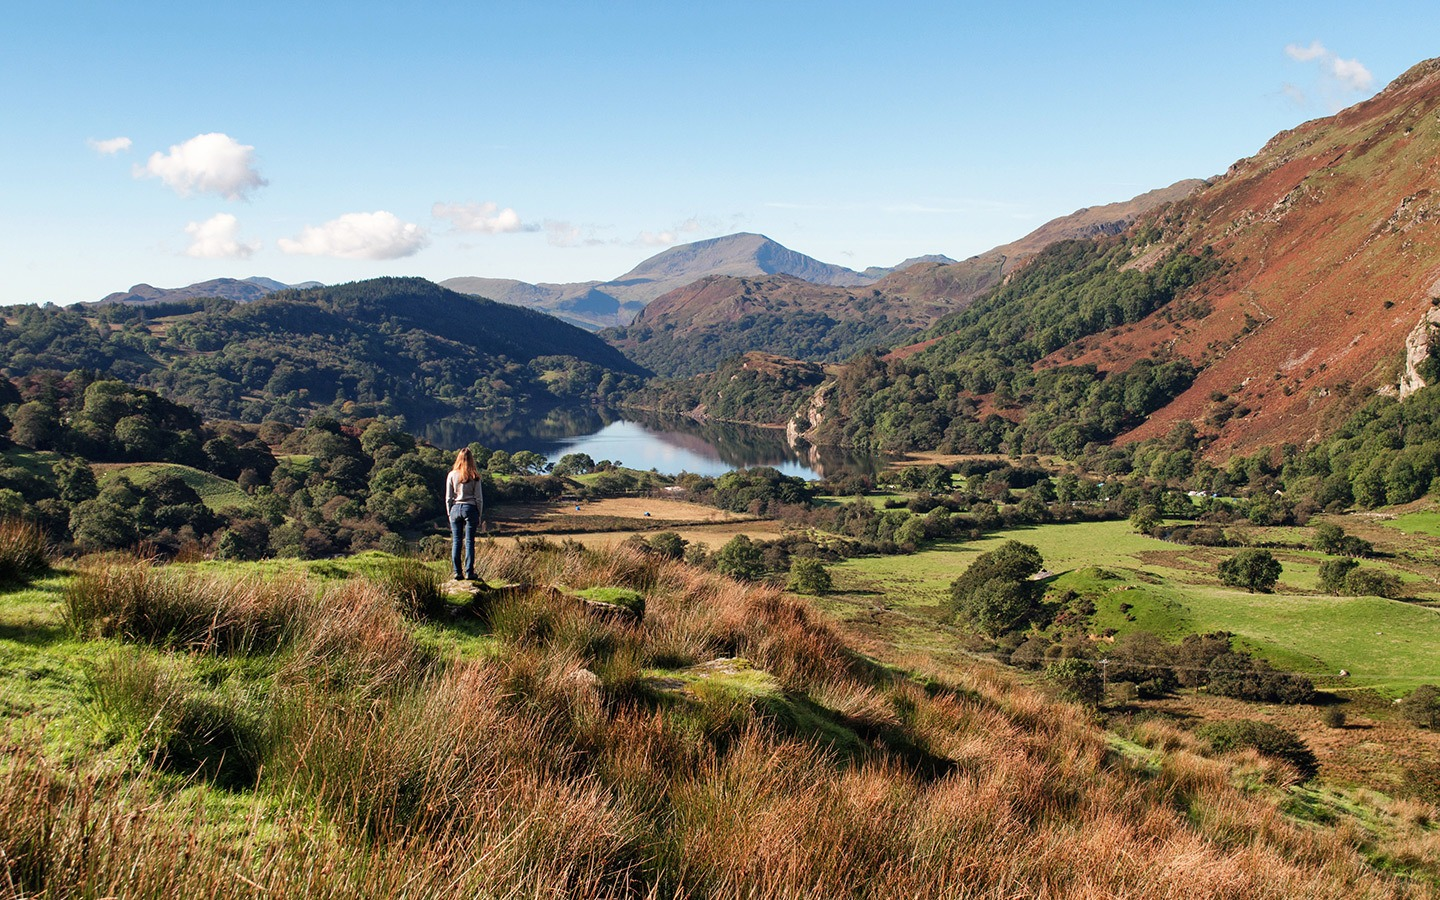 Snowdonia road trip through this beautiful National Park in North Wales, with clear lakes, mountain peaks and forests – could this be Wales' most scenic driving route?